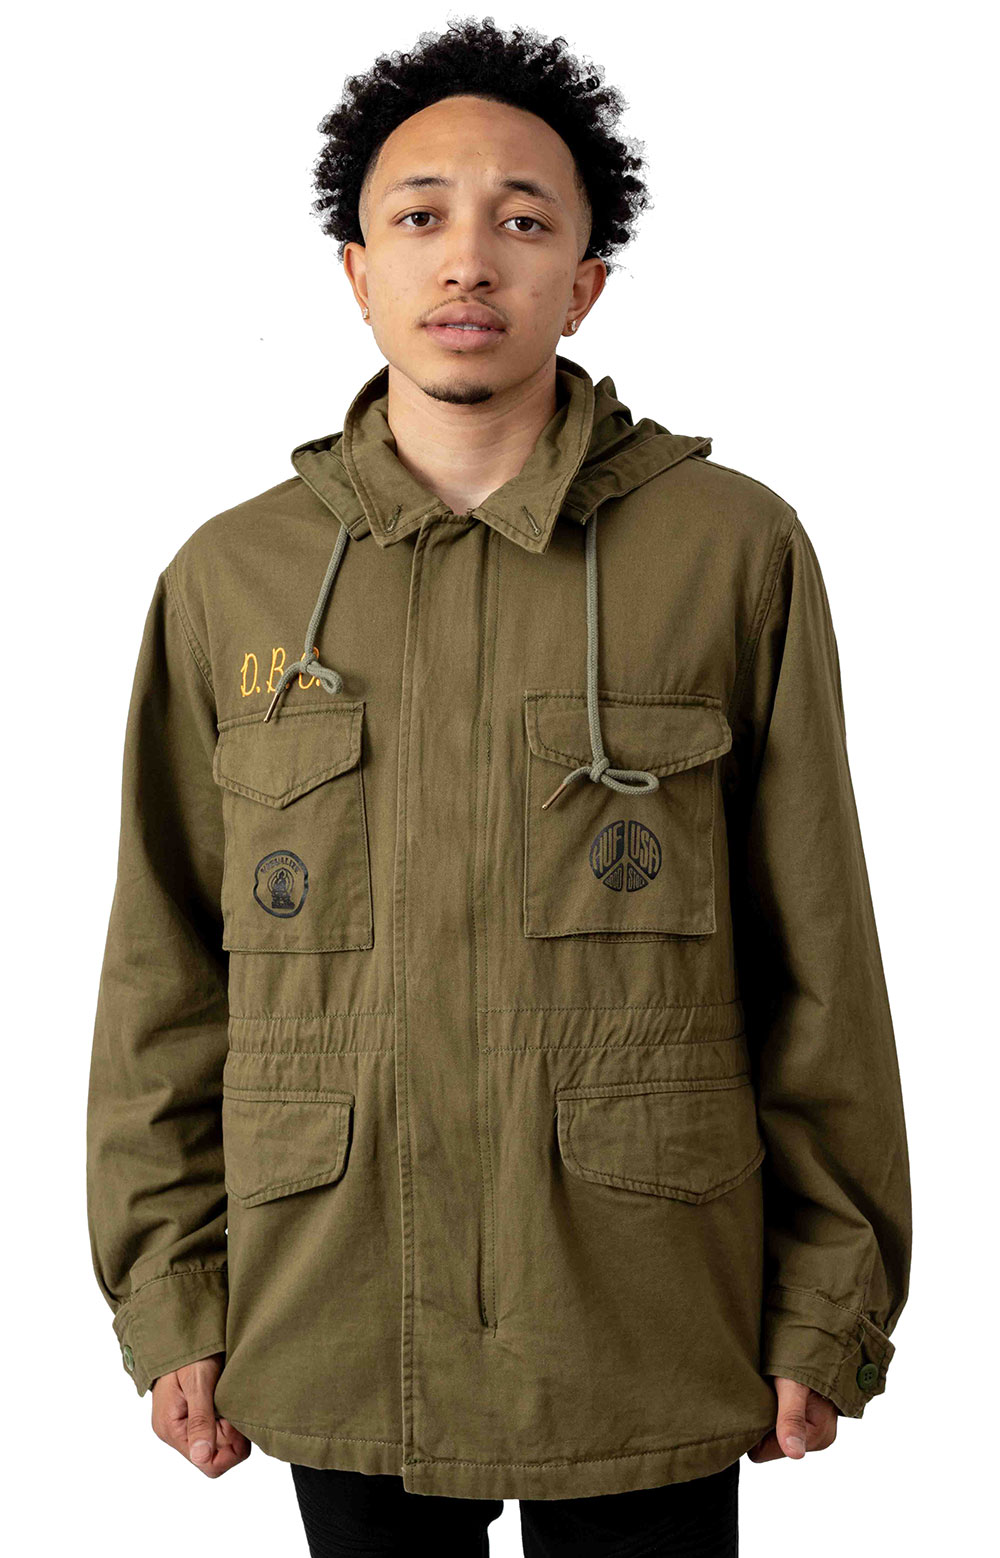 Woodstock Objector M65 Jacket